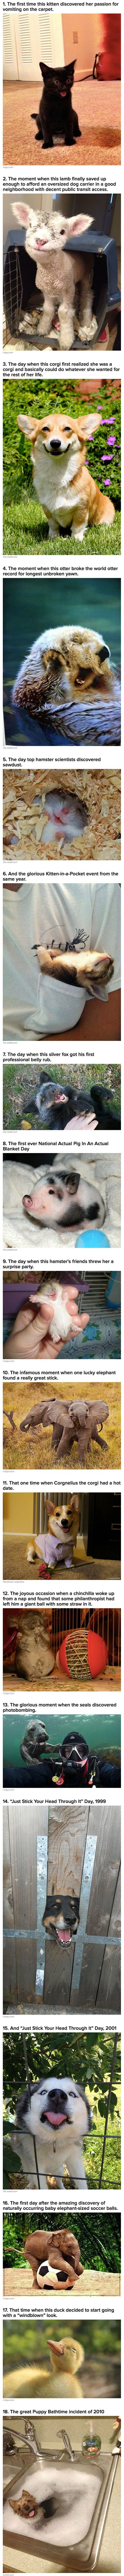 We have rounded up a few geeky animals who have discovered true happiness.: Cutest Animal